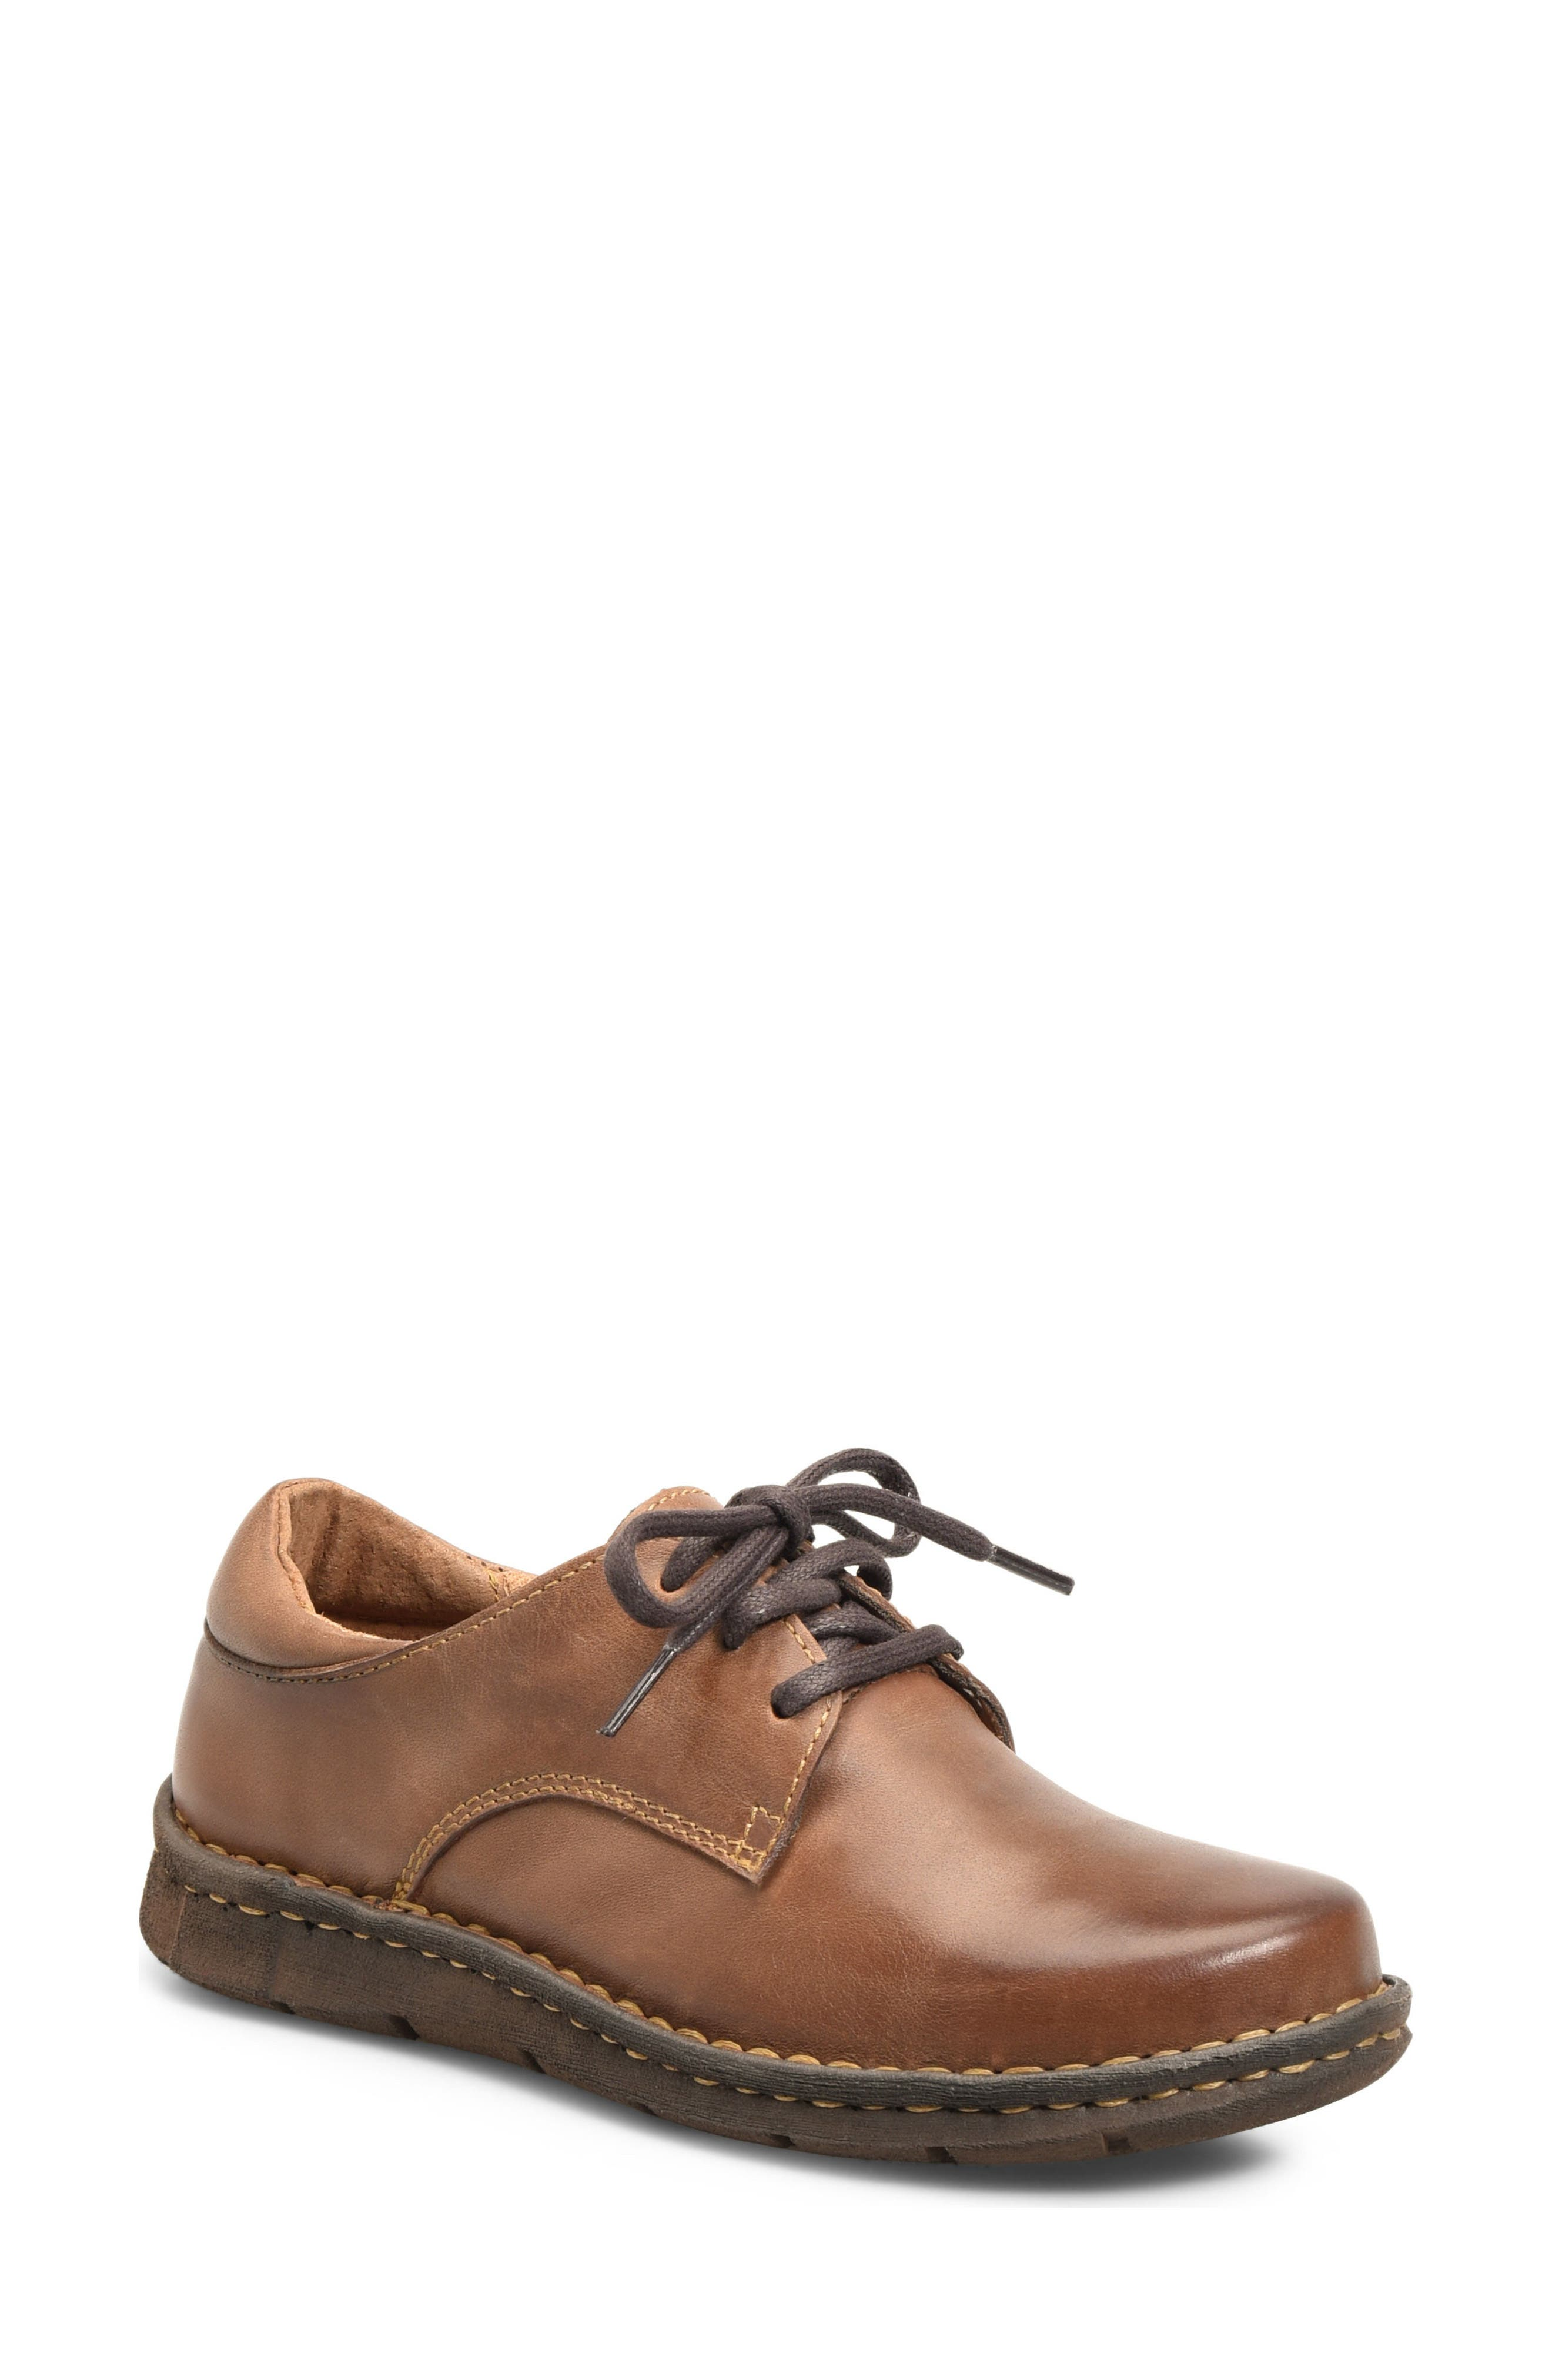 Motto Oxford,                         Main,                         color, Brown Leather